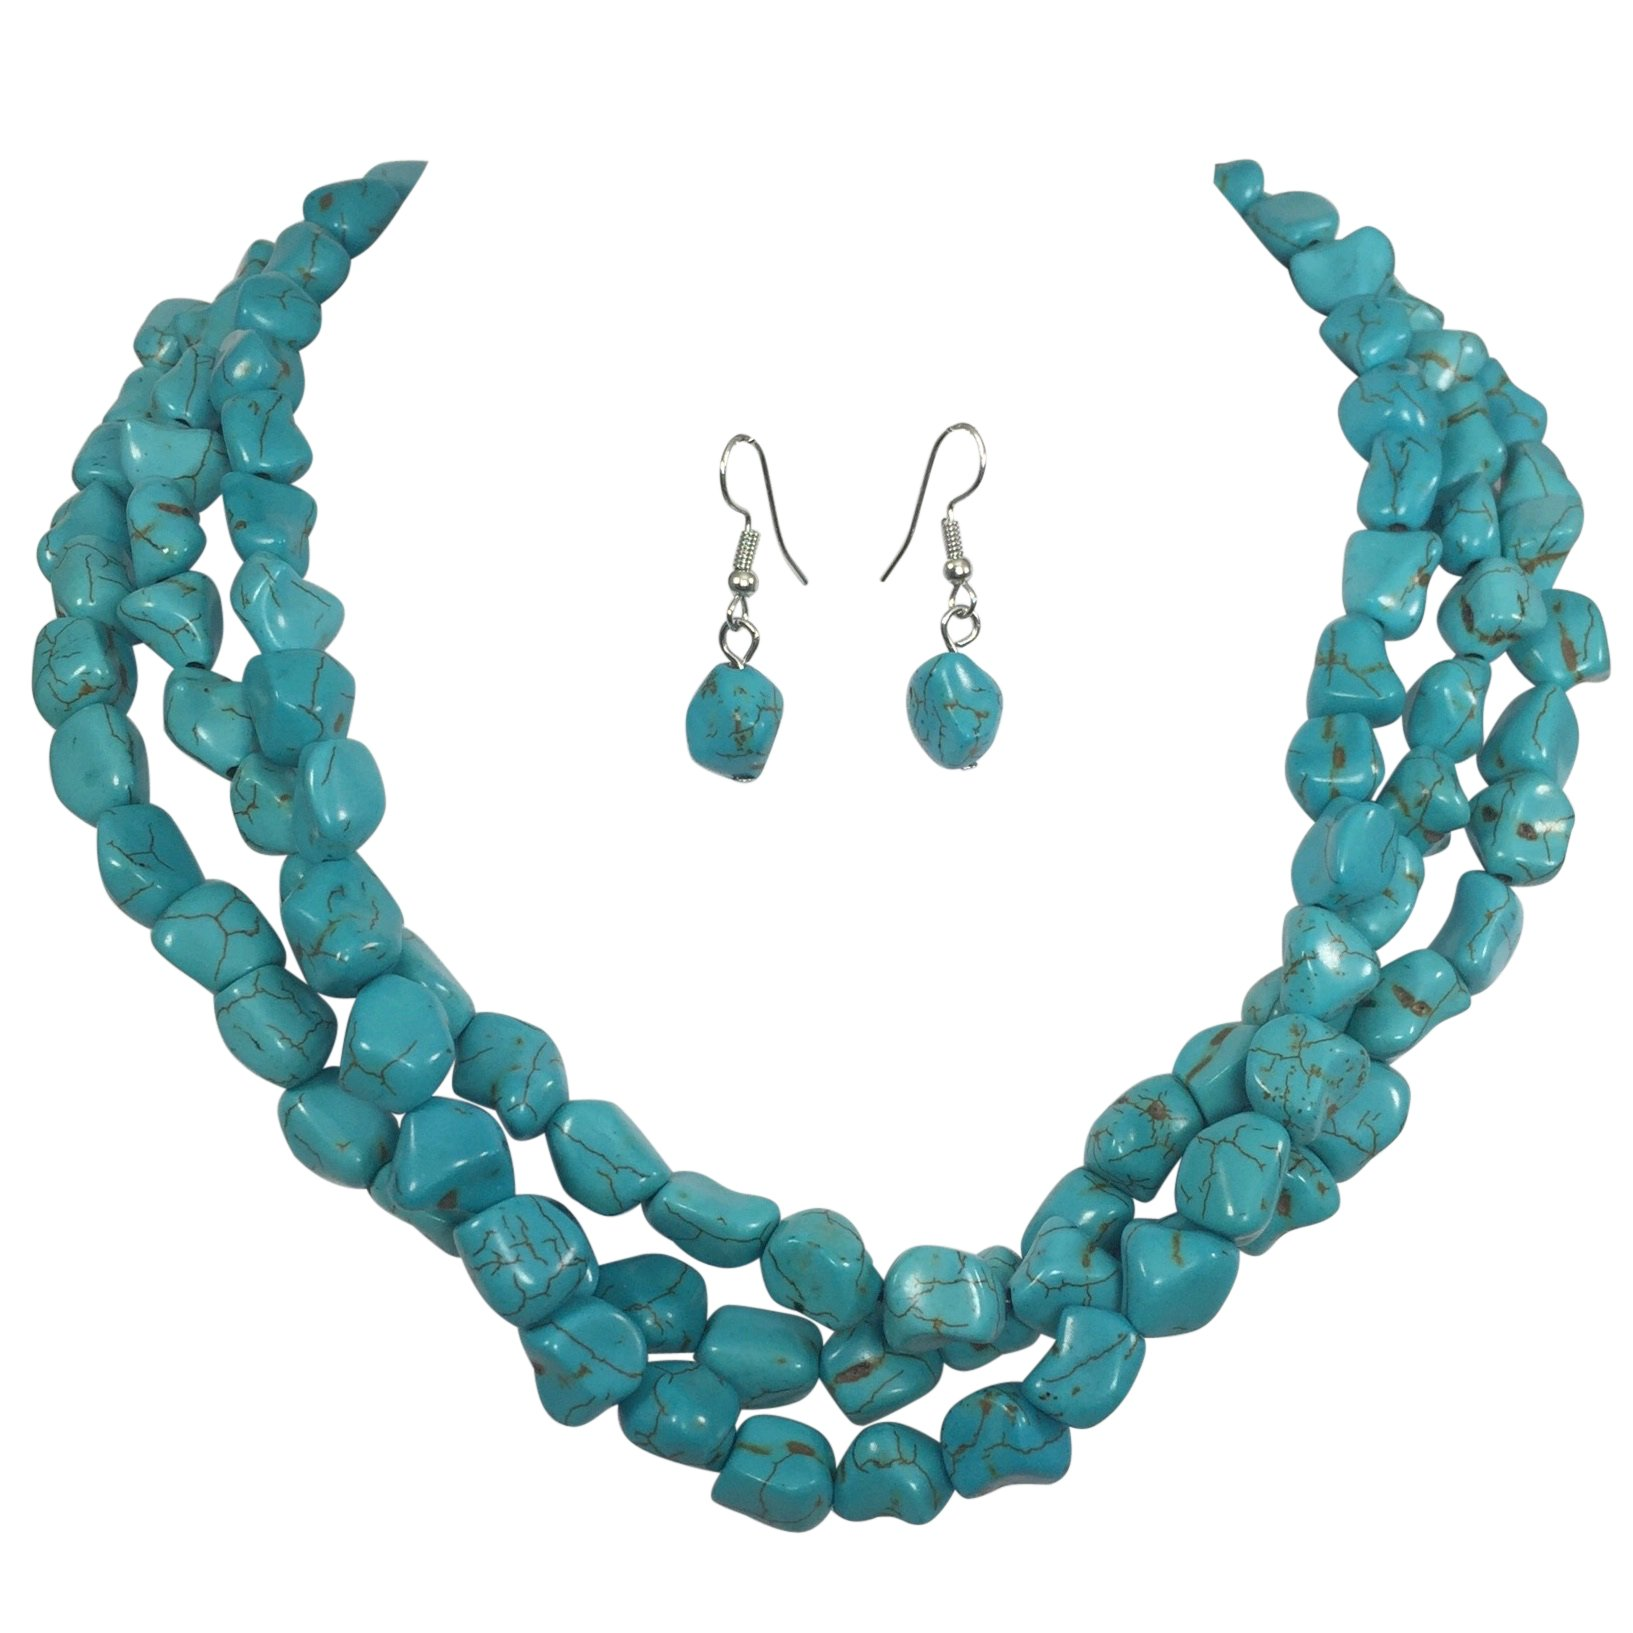 3 Row Imitation Turquoise Stone Beaded Layered Necklace And Earrings Set by Gypsy Jewels